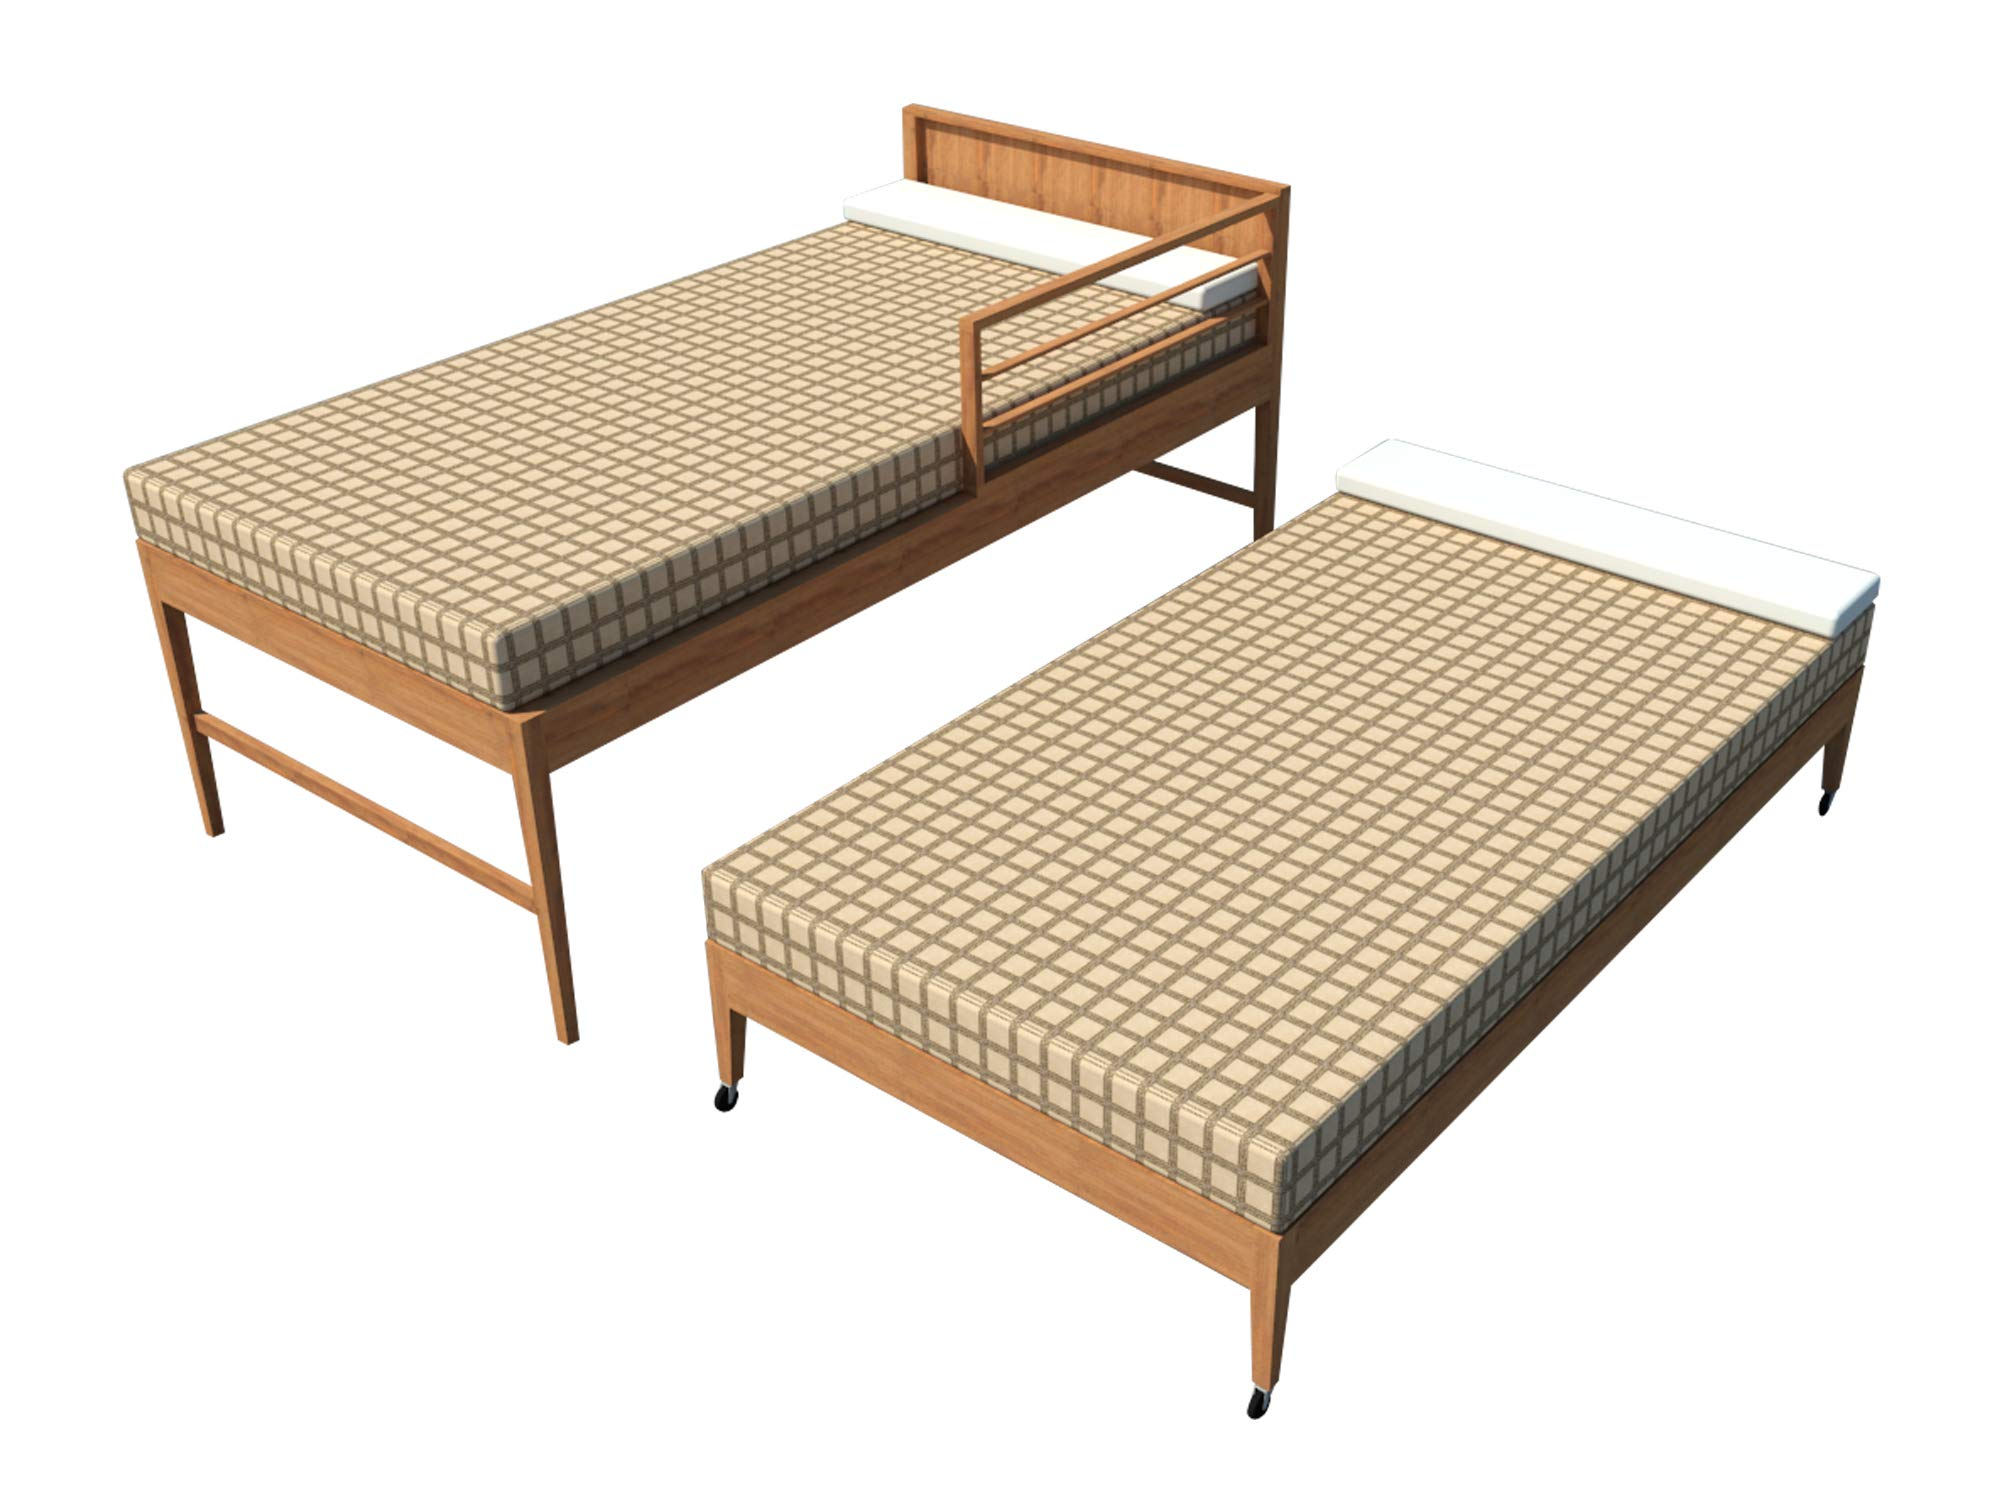 Trundle Bed Plans DIY Children Daybed Kids Roll Away Guest Bed Sleeper Furniture